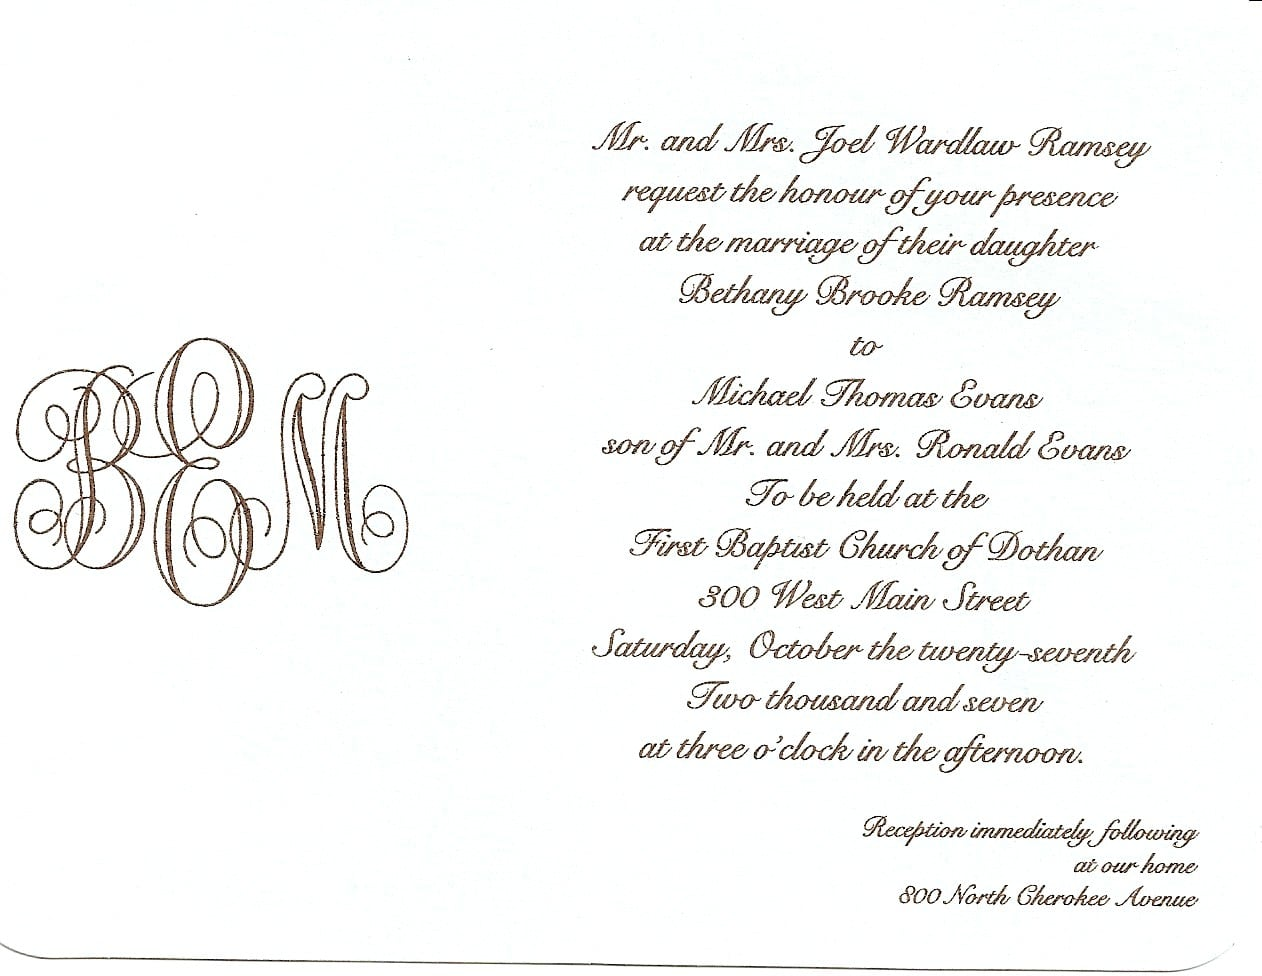 Wedding invitation letter sample wording plus size mother bride image result for wedding invitation letter sample wording stopboris Image collections